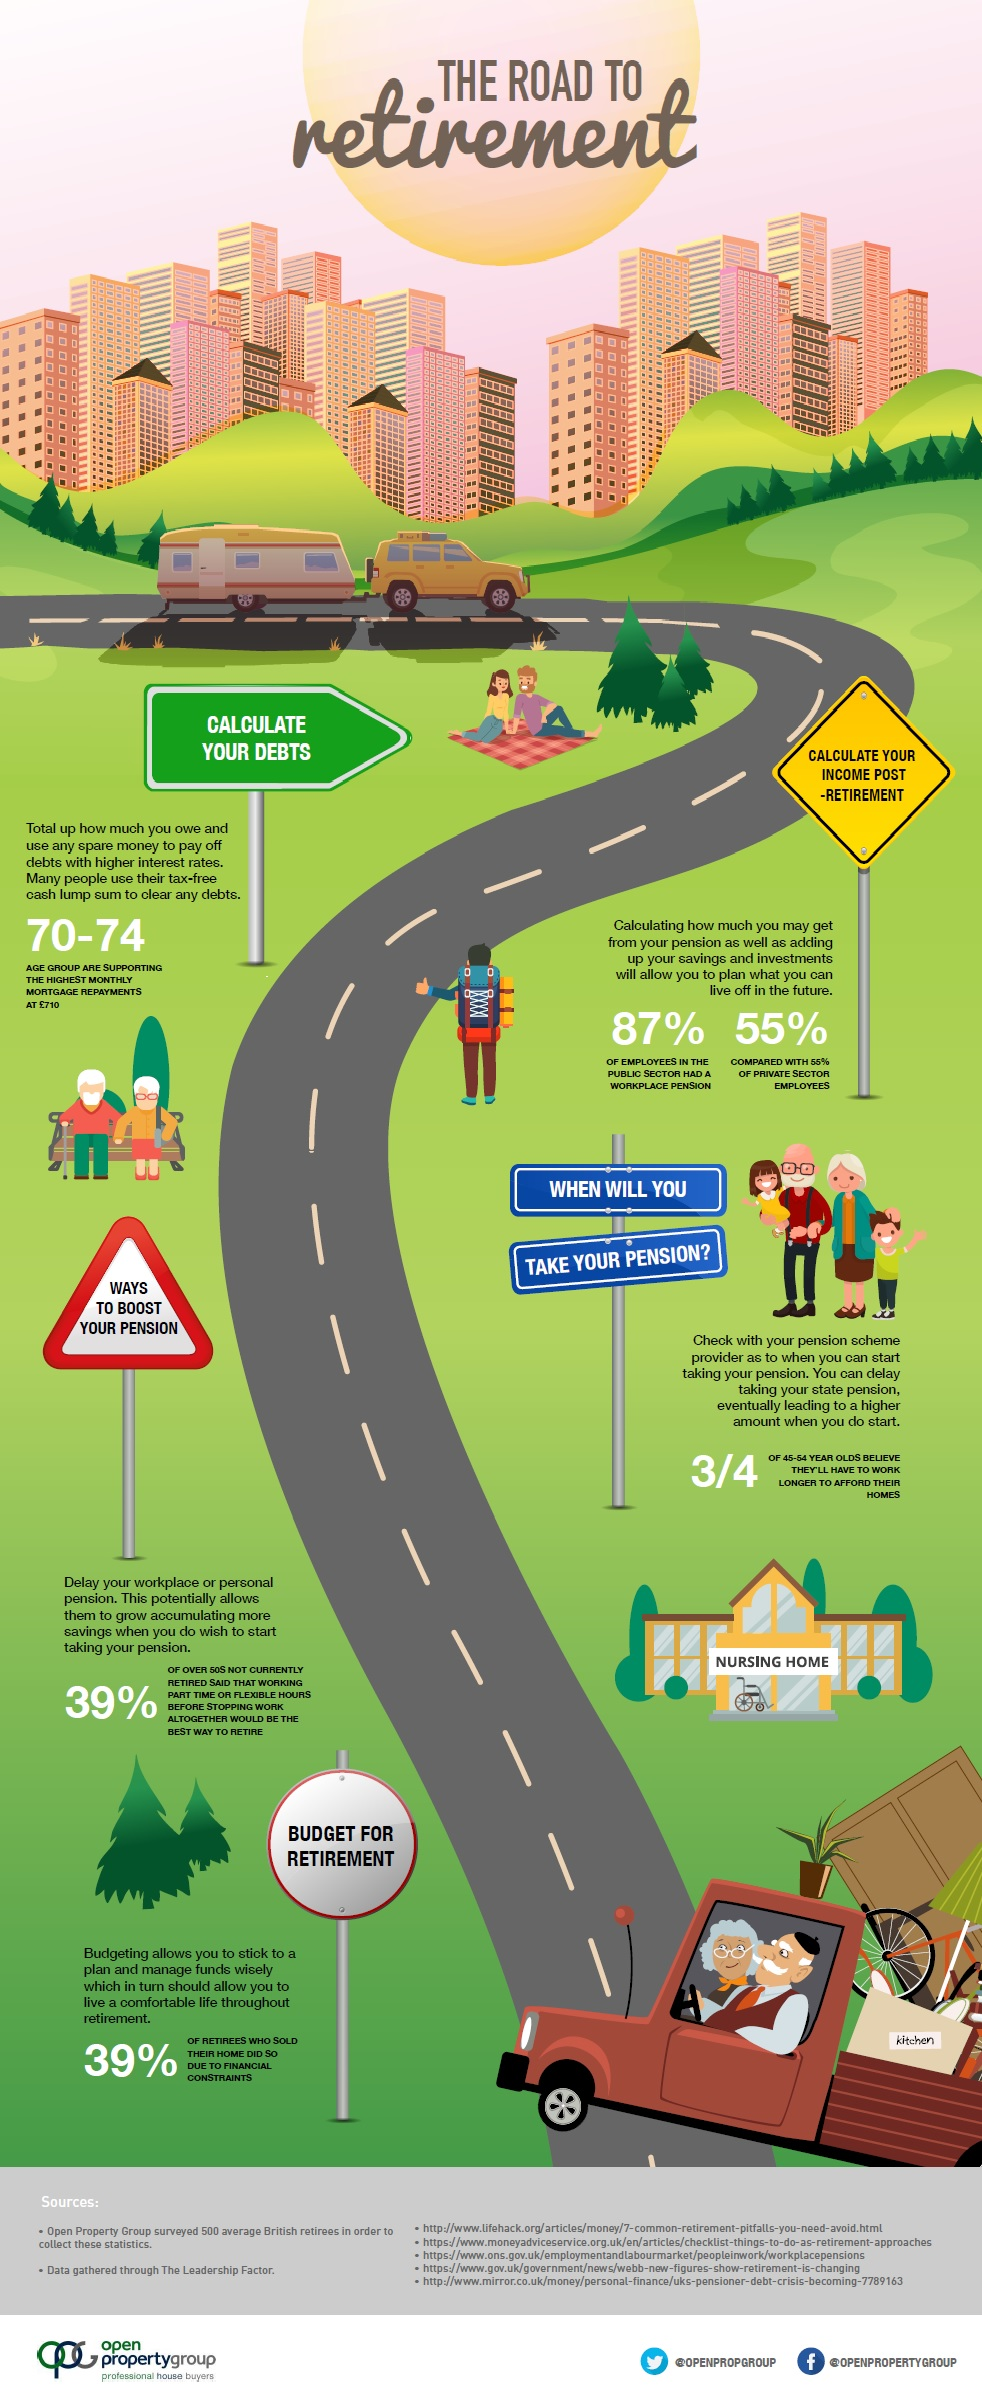 Road to Retirement infographic